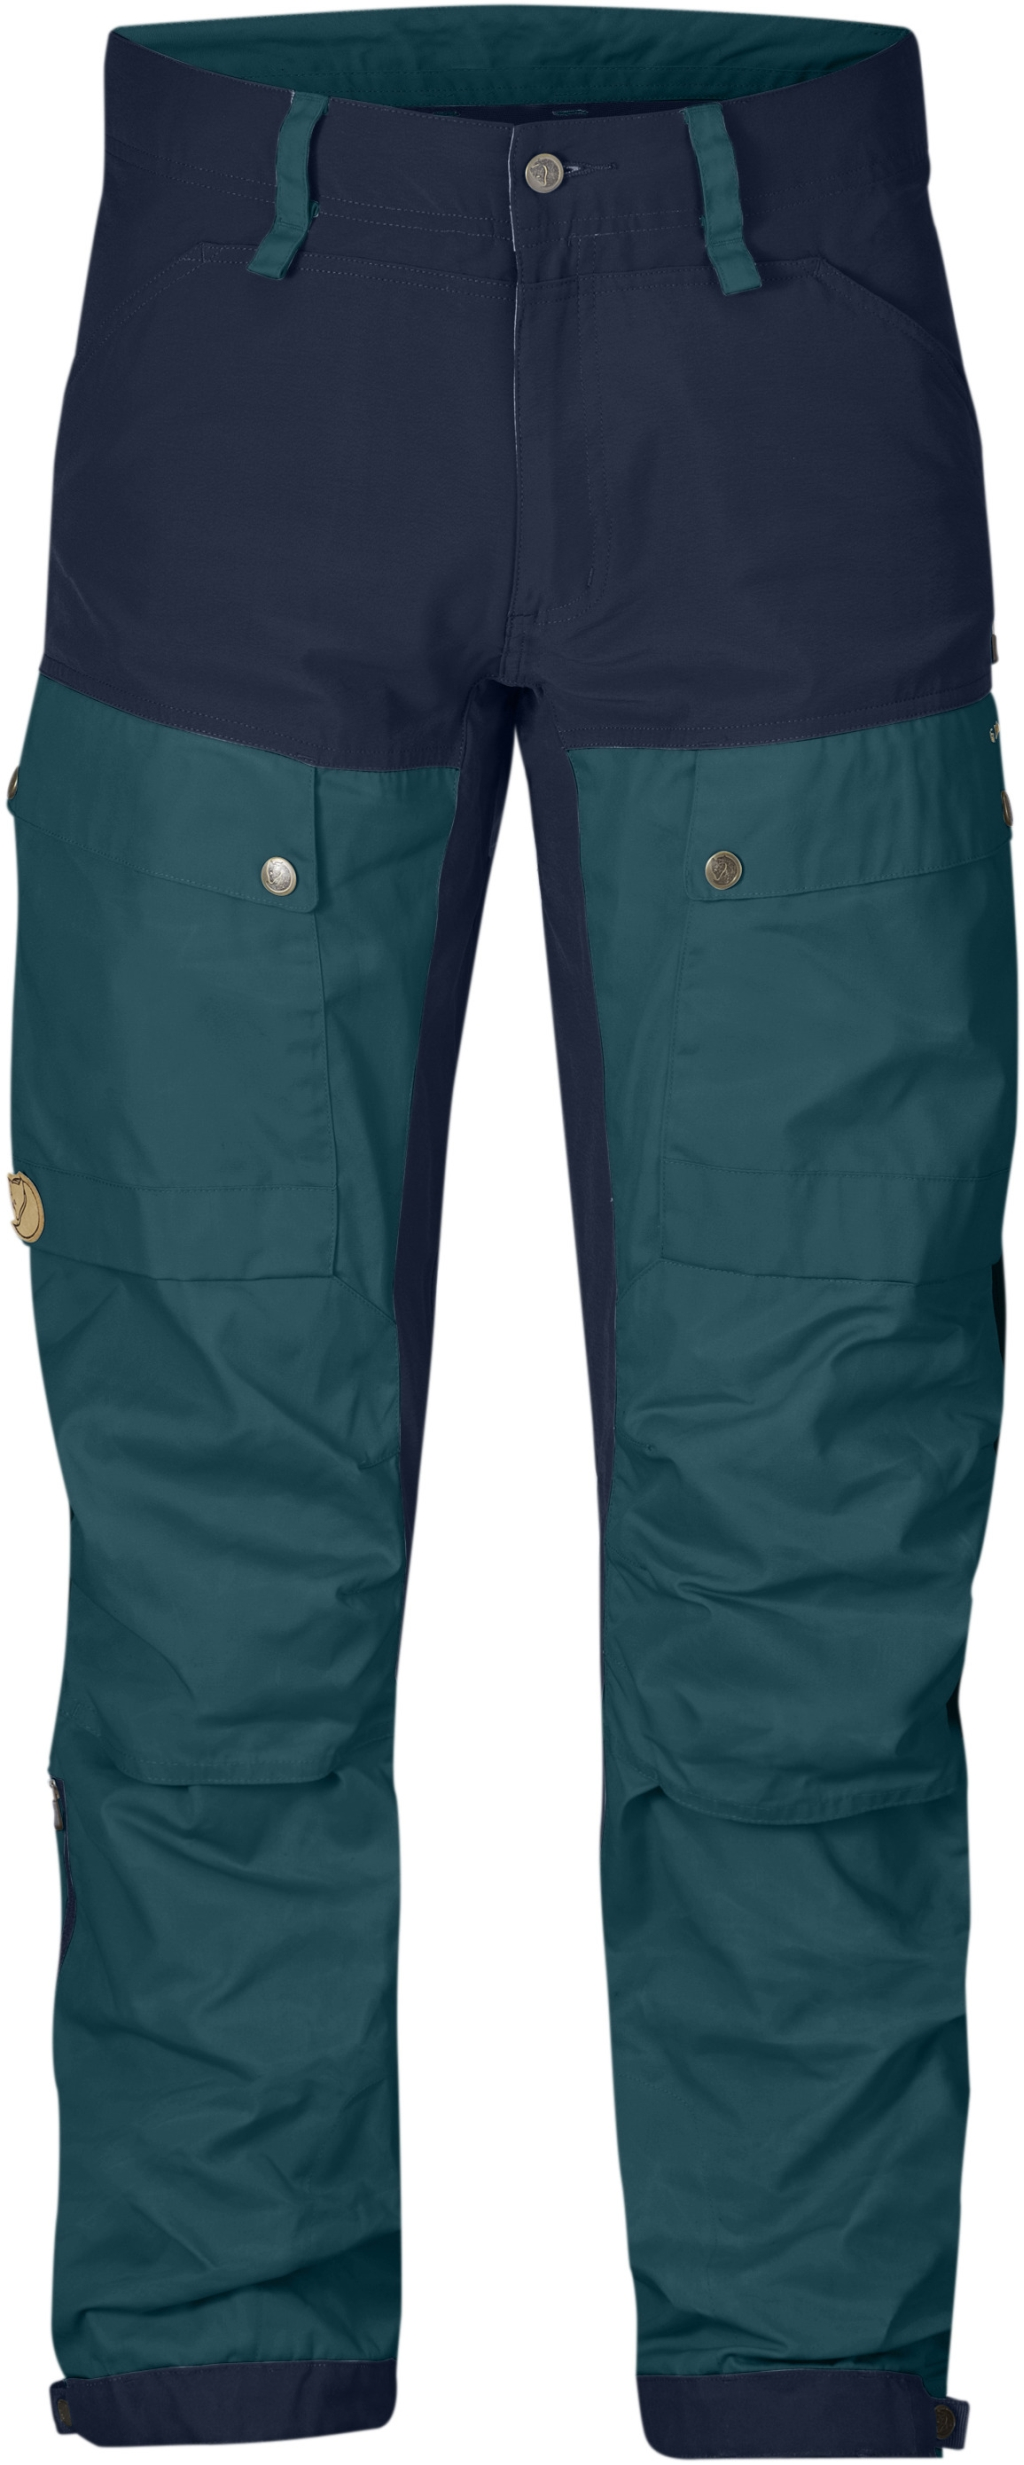 FjallRaven Keb Trousers Long Glacier Green-30